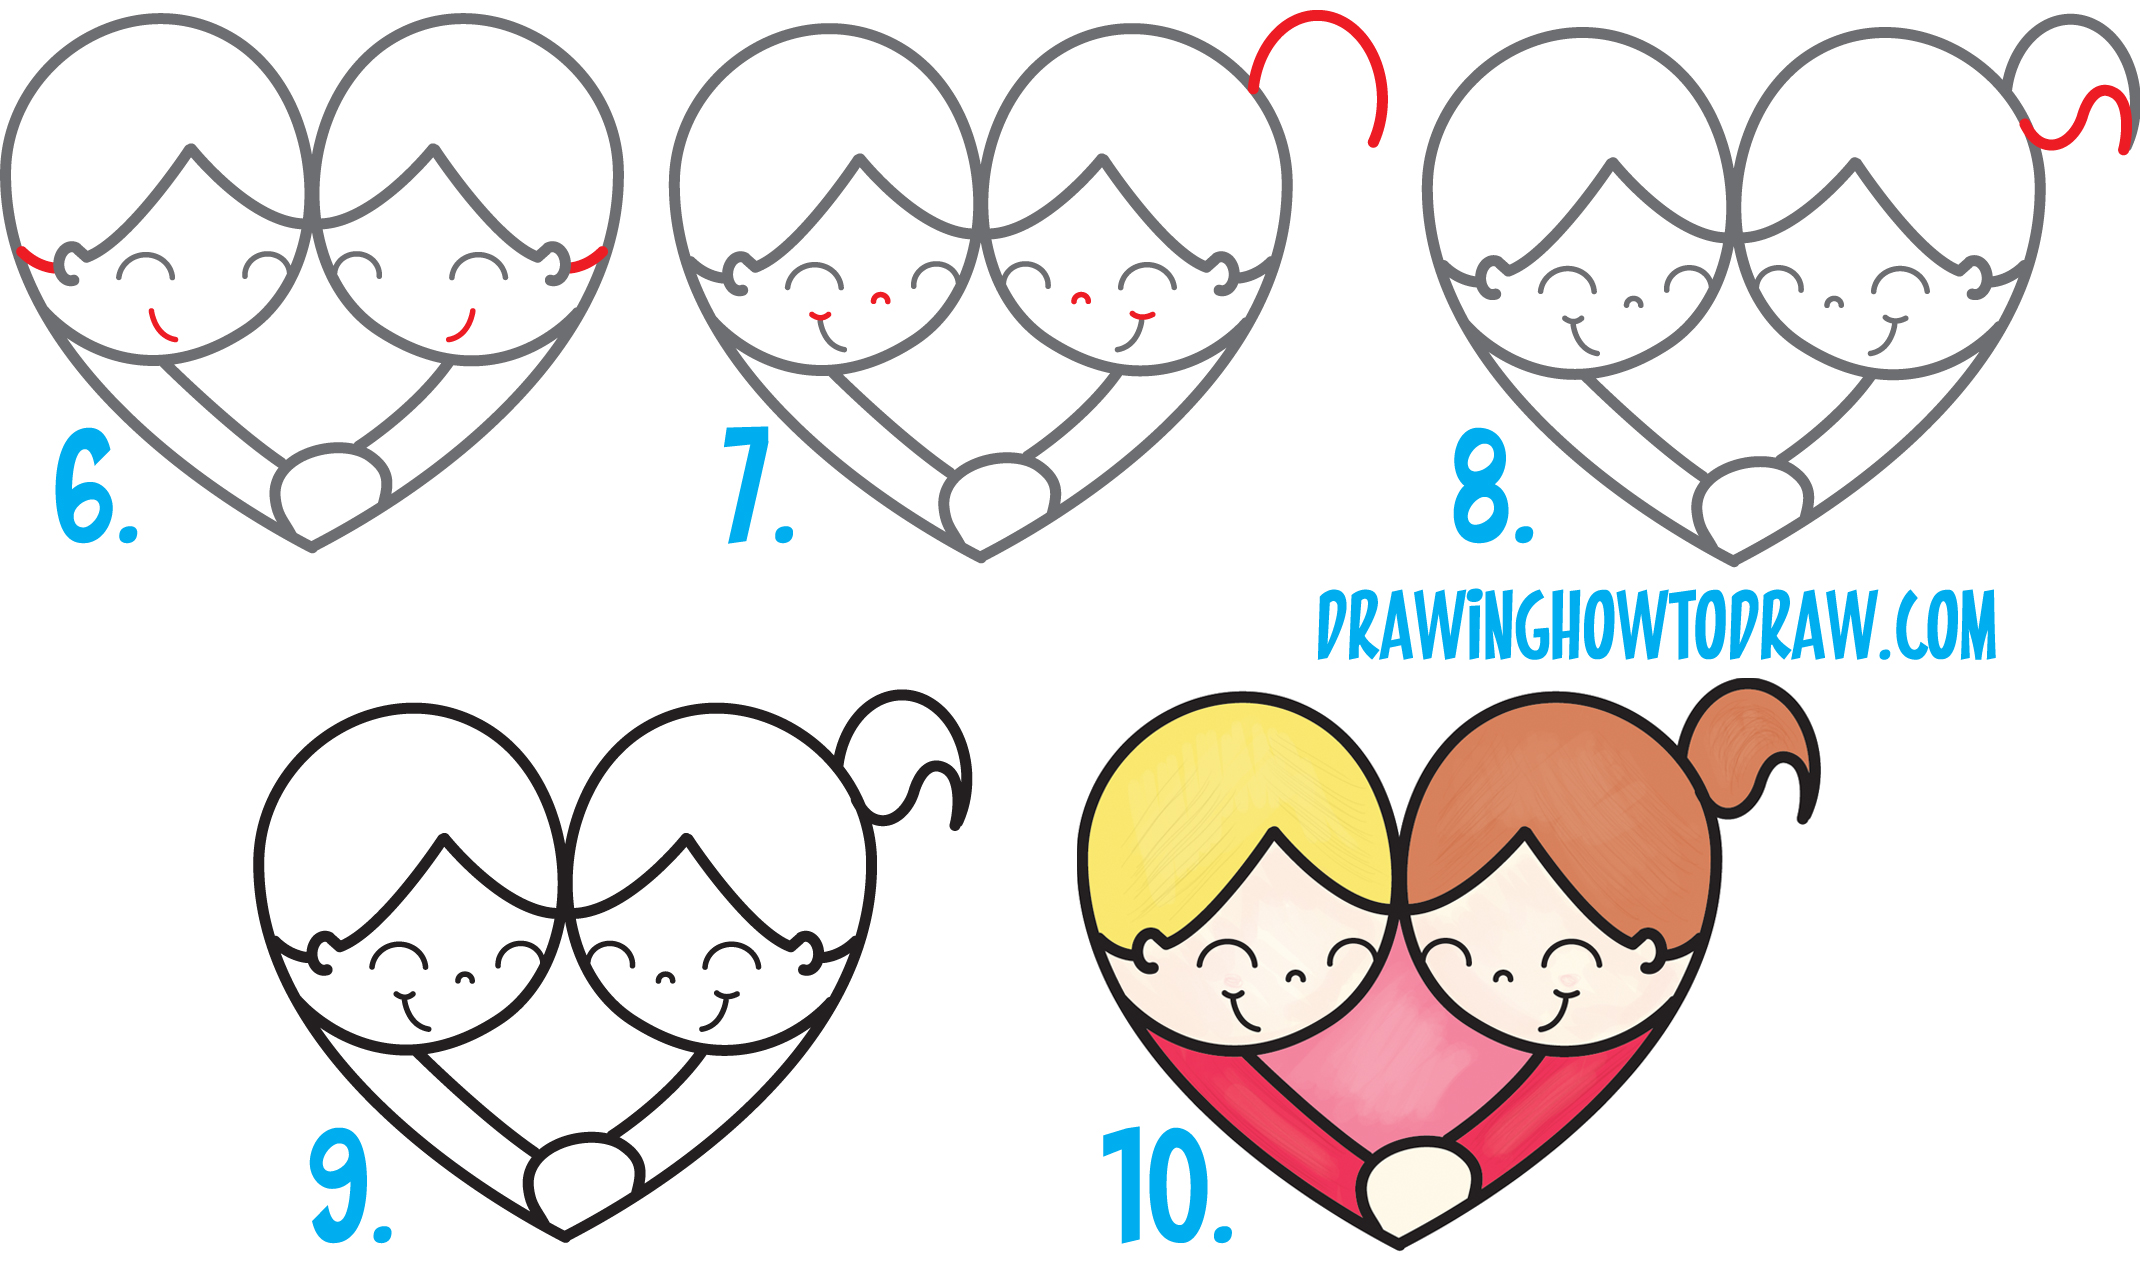 learn how to draw cartoon kids hugging and in love from 99 shape simple steps